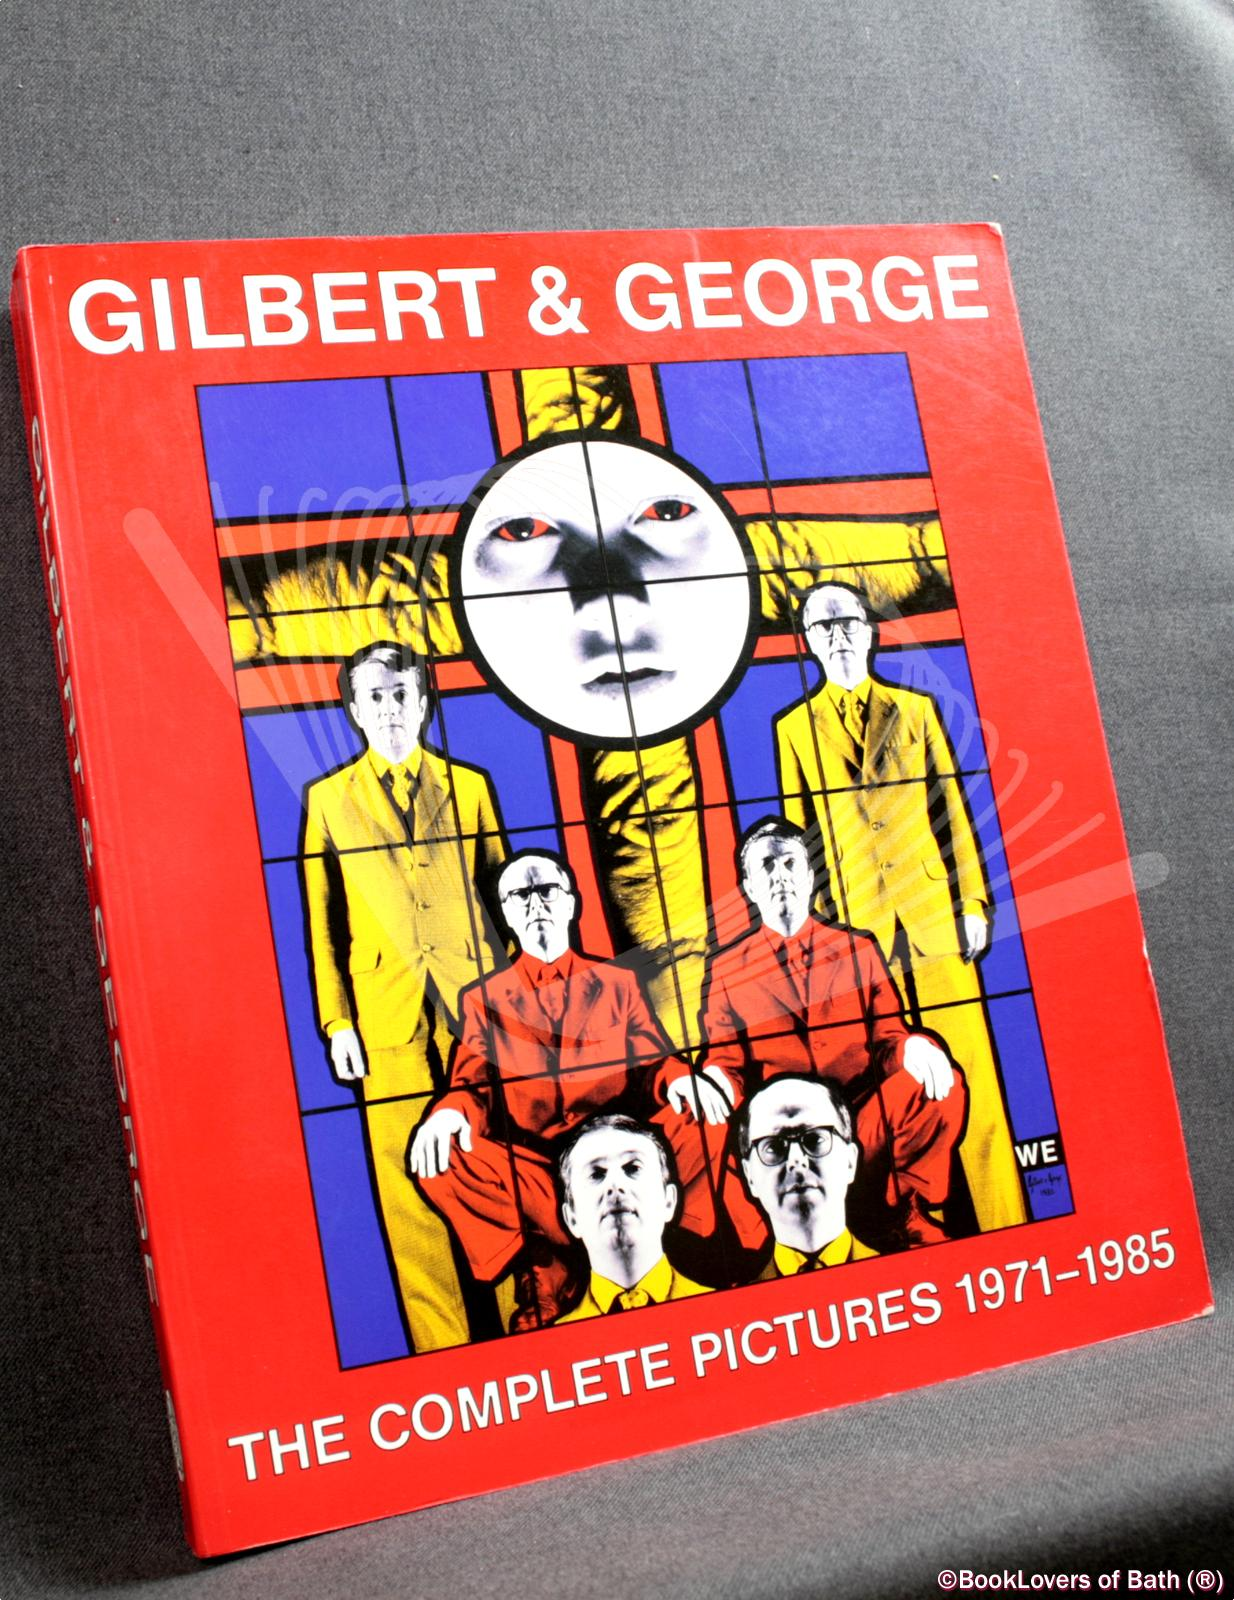 Gilbert and George: The Complete Pictures 1971-1985 - Carter Ratcliff